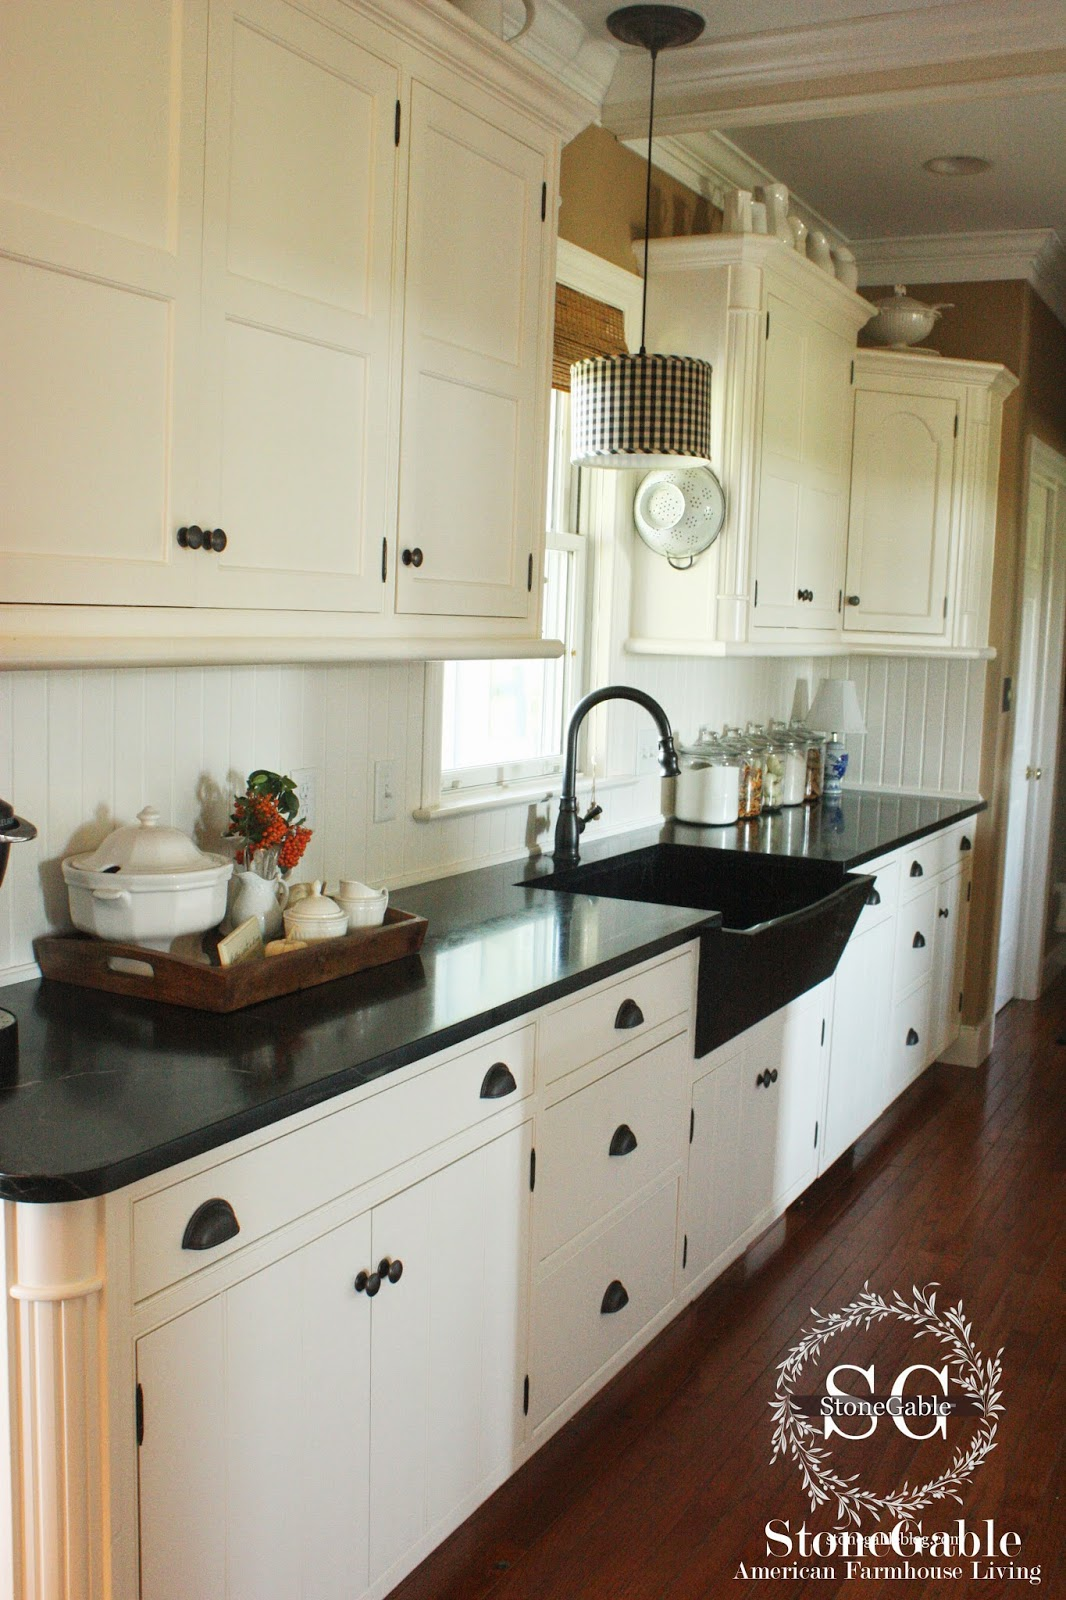 10 ELEMENTS OF A FARMHOUSE KITCHEN Part 49